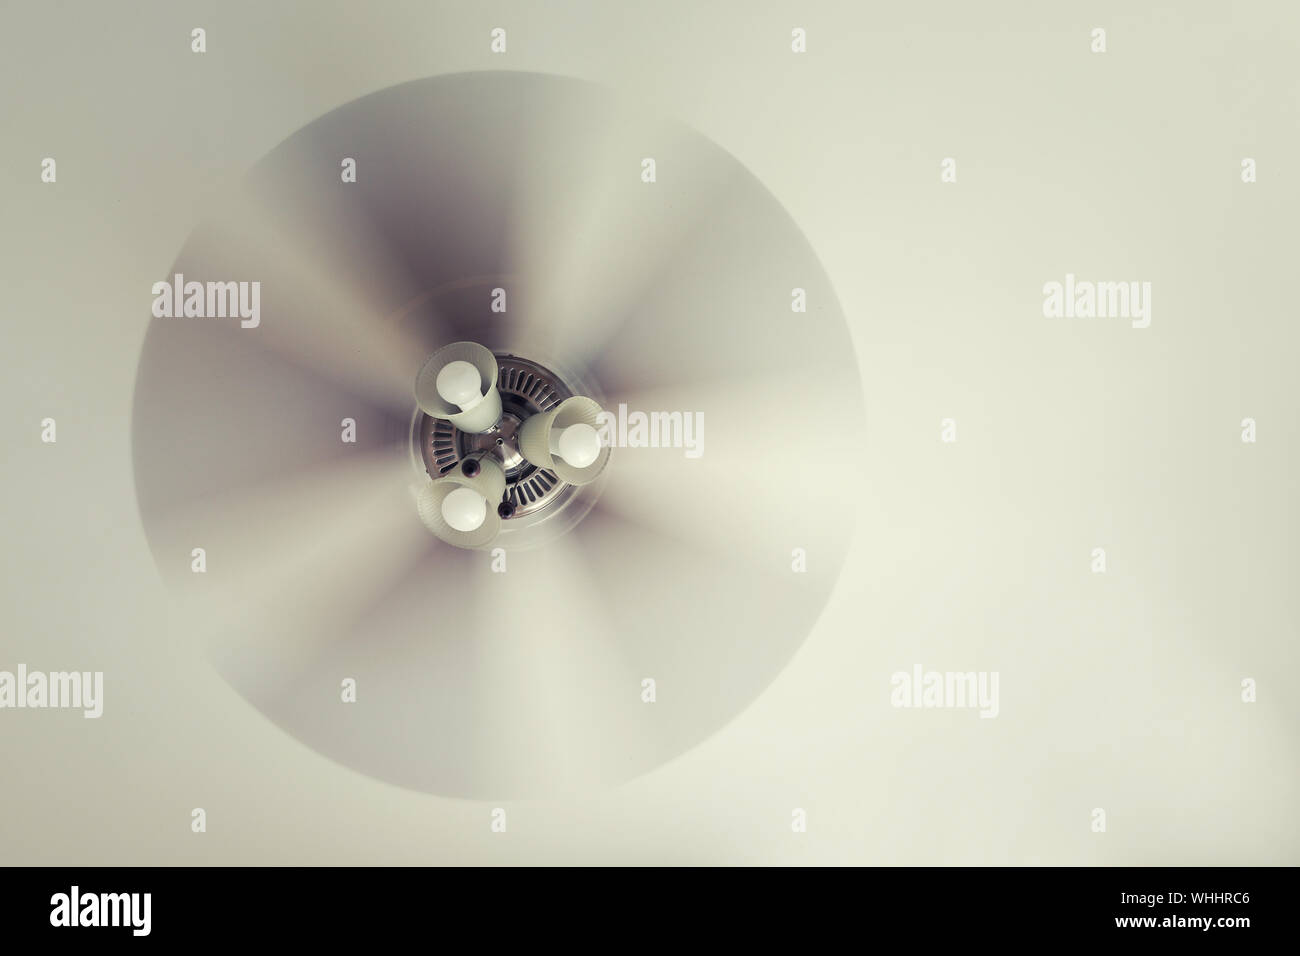 A working ceiling fan on a white ceiling, close up with blurred fan blades, three lamps, daytime. Stock Photo